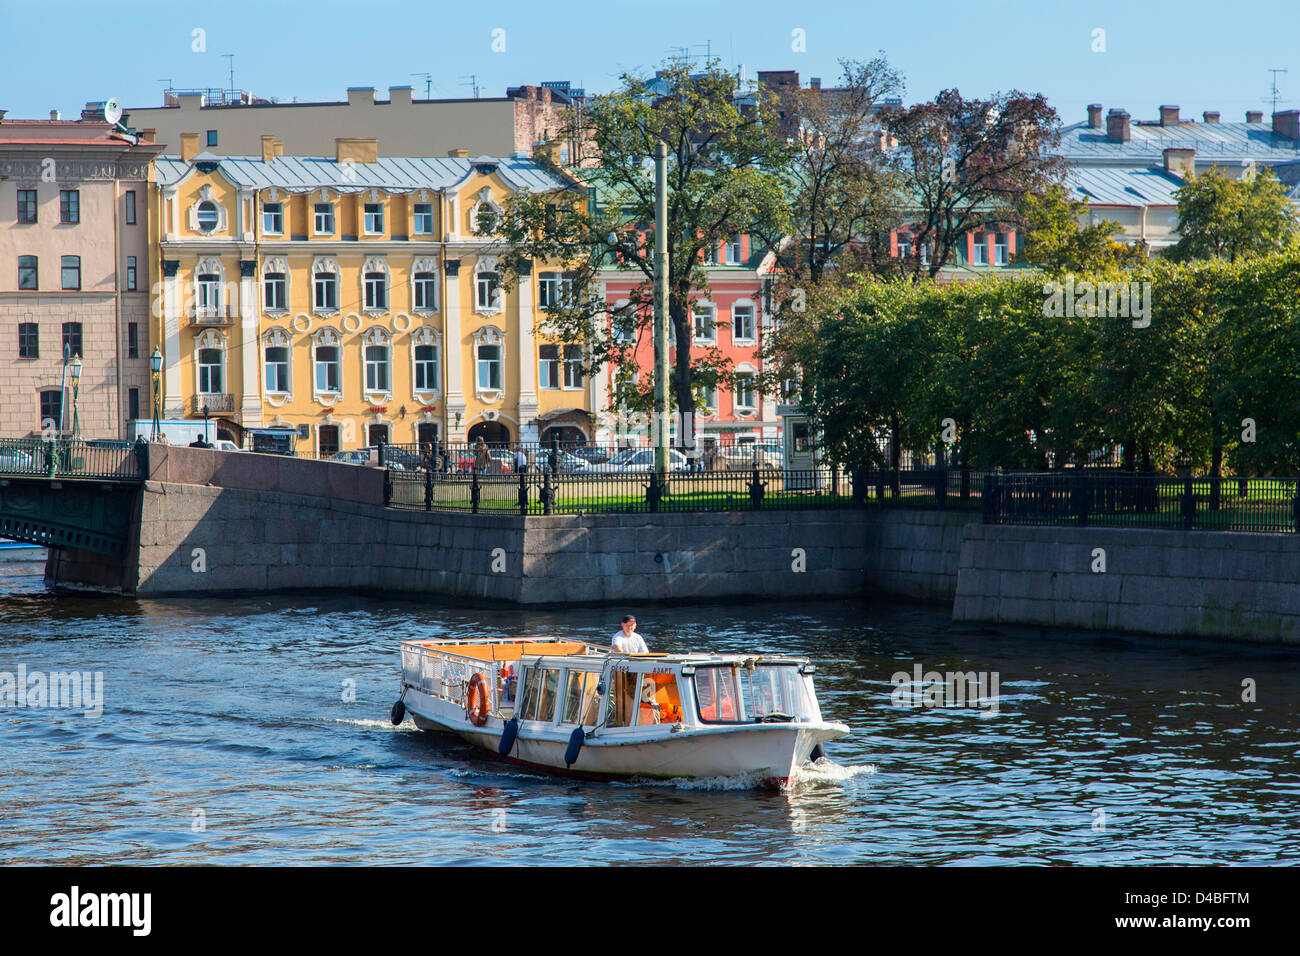 St. Petersburg, Tour Boat on the Canal - Stock Image